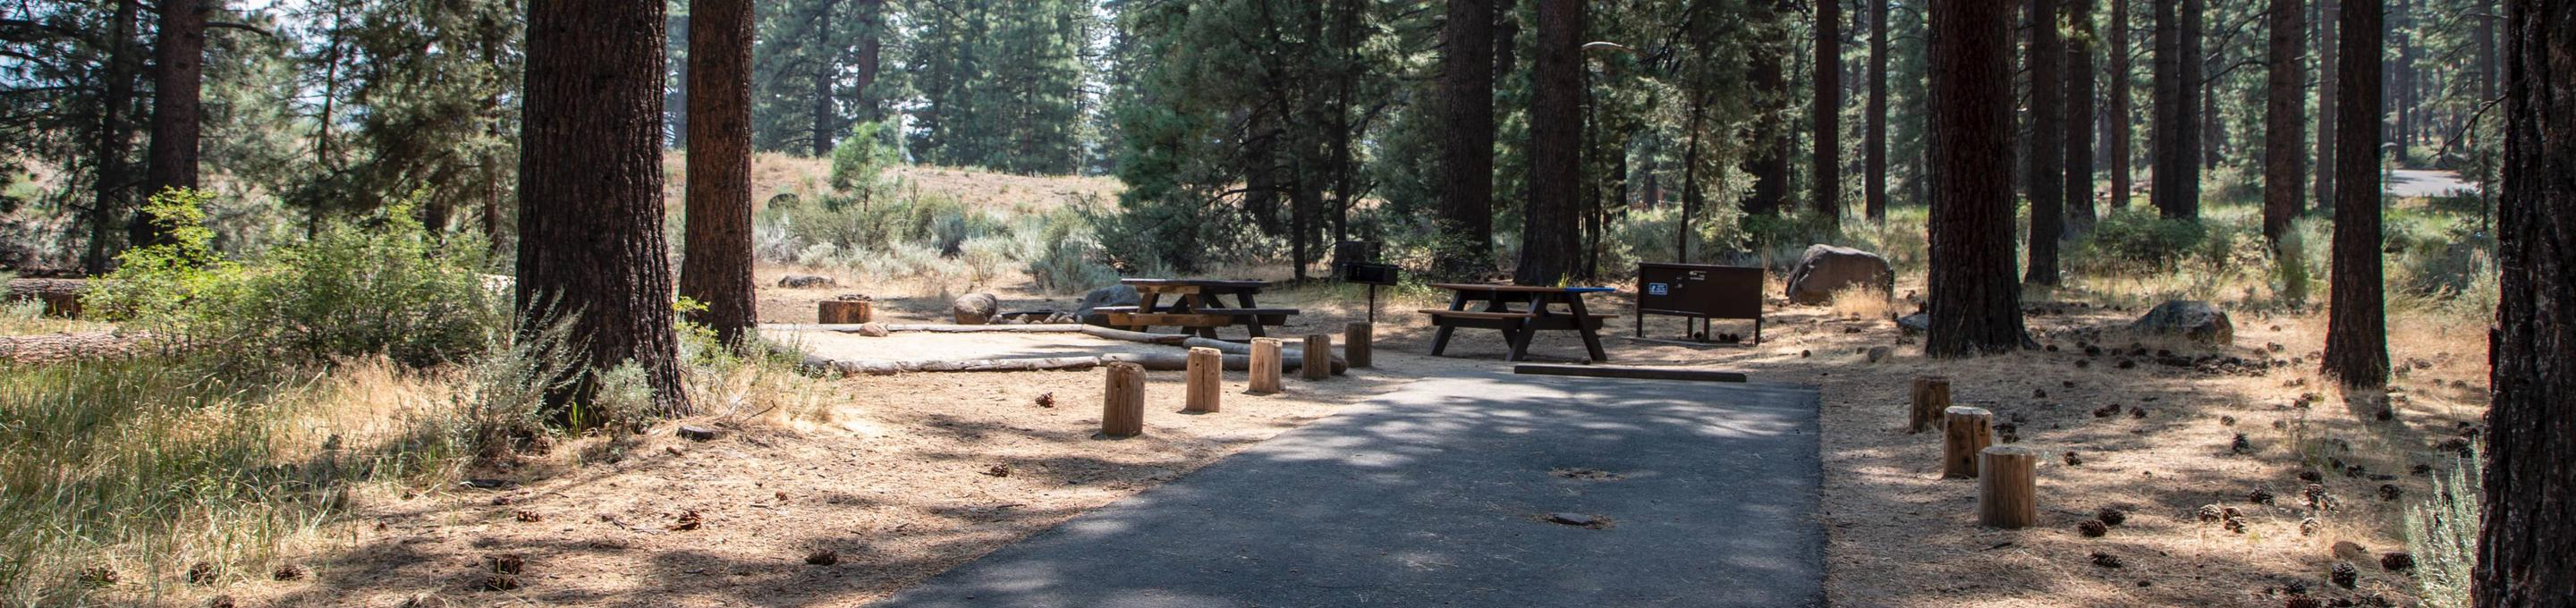 Indian Creek Campground Site #11